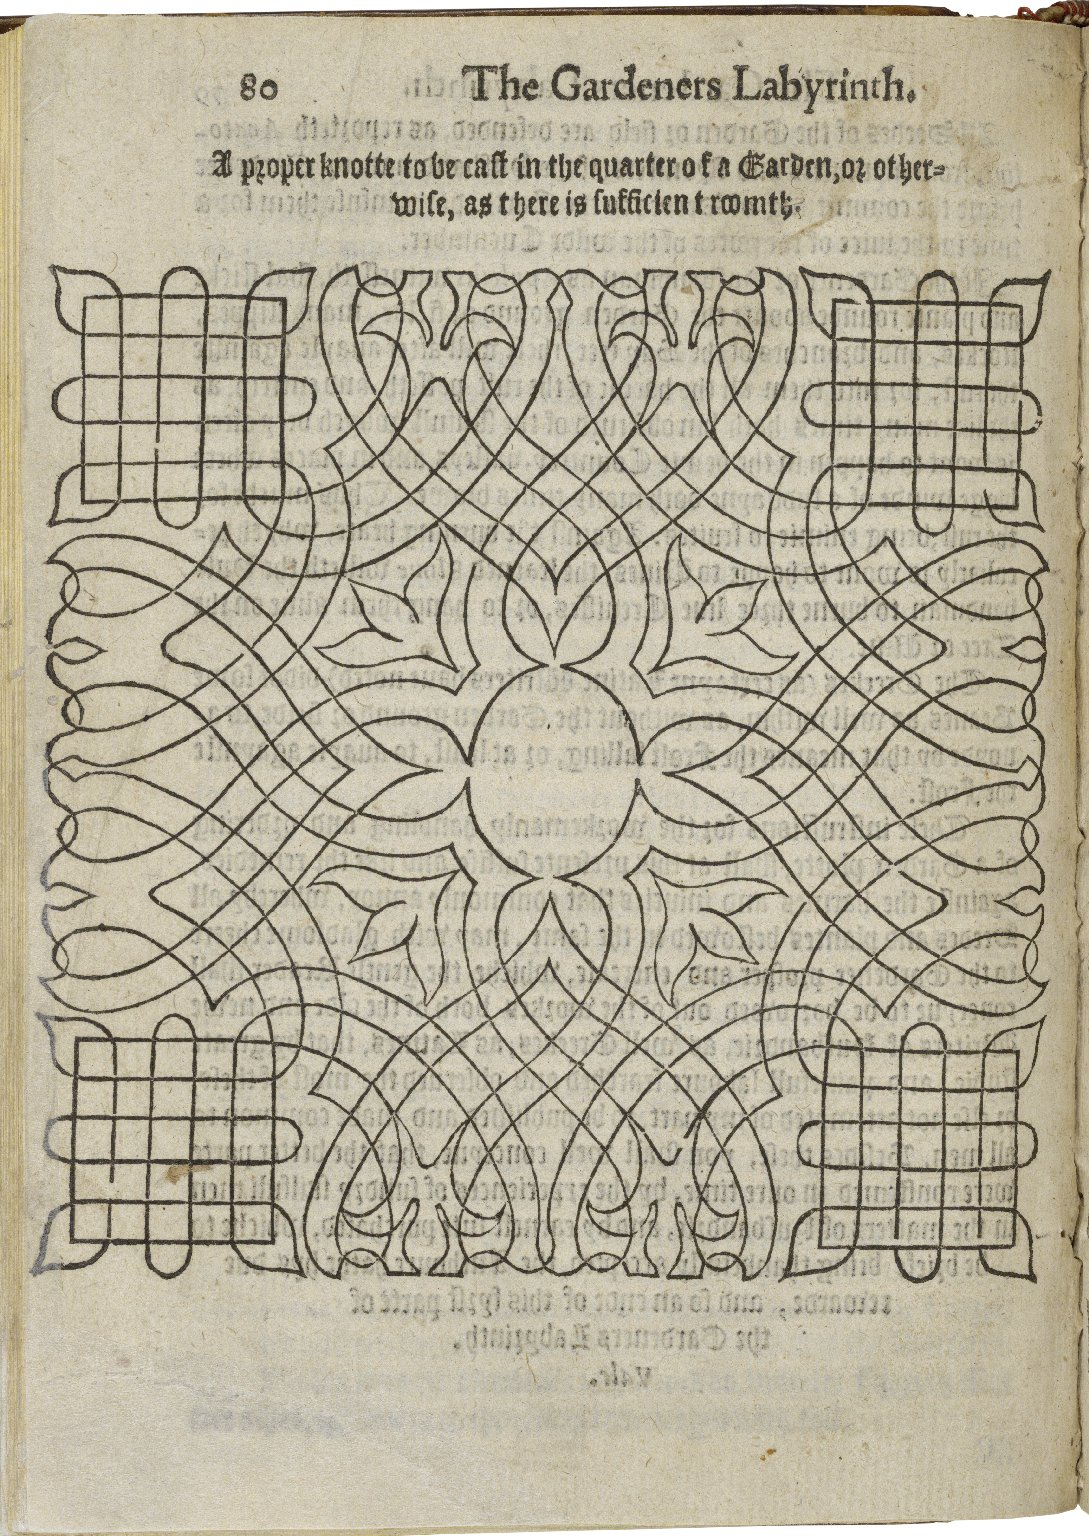 The gardeners labyrinth: containing a discourse of the gardeners life, in the yearly trauels to be bestovved on his plot of earth, for the vse of a garden: with instructions for the choise of seedes, ...